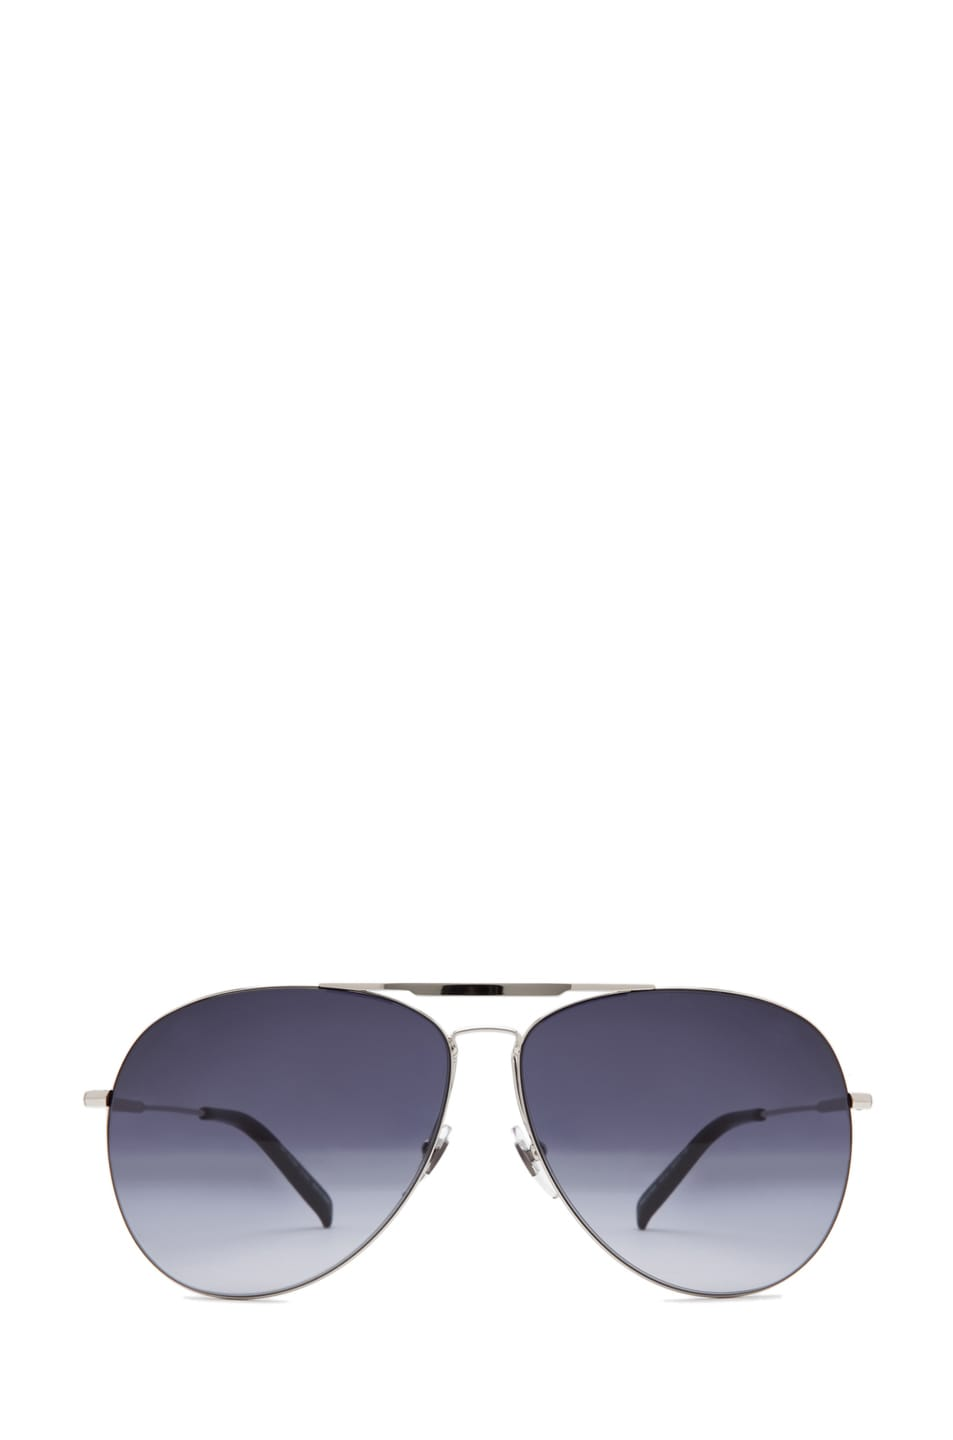 Image 1 of Alexander McQueen 4173 Sunglasses in Palladium